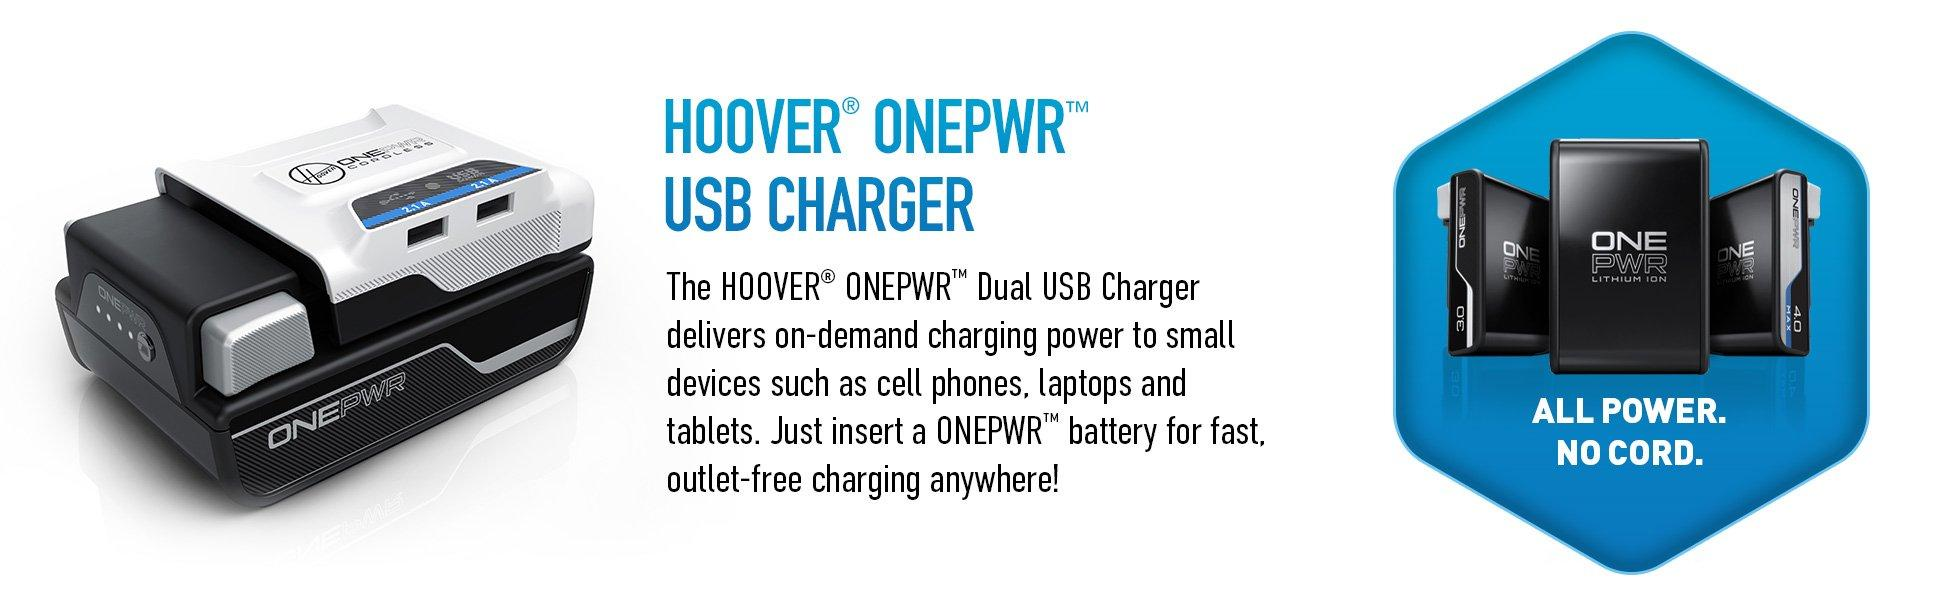 ONEPWR Cordless Dual USB Charger